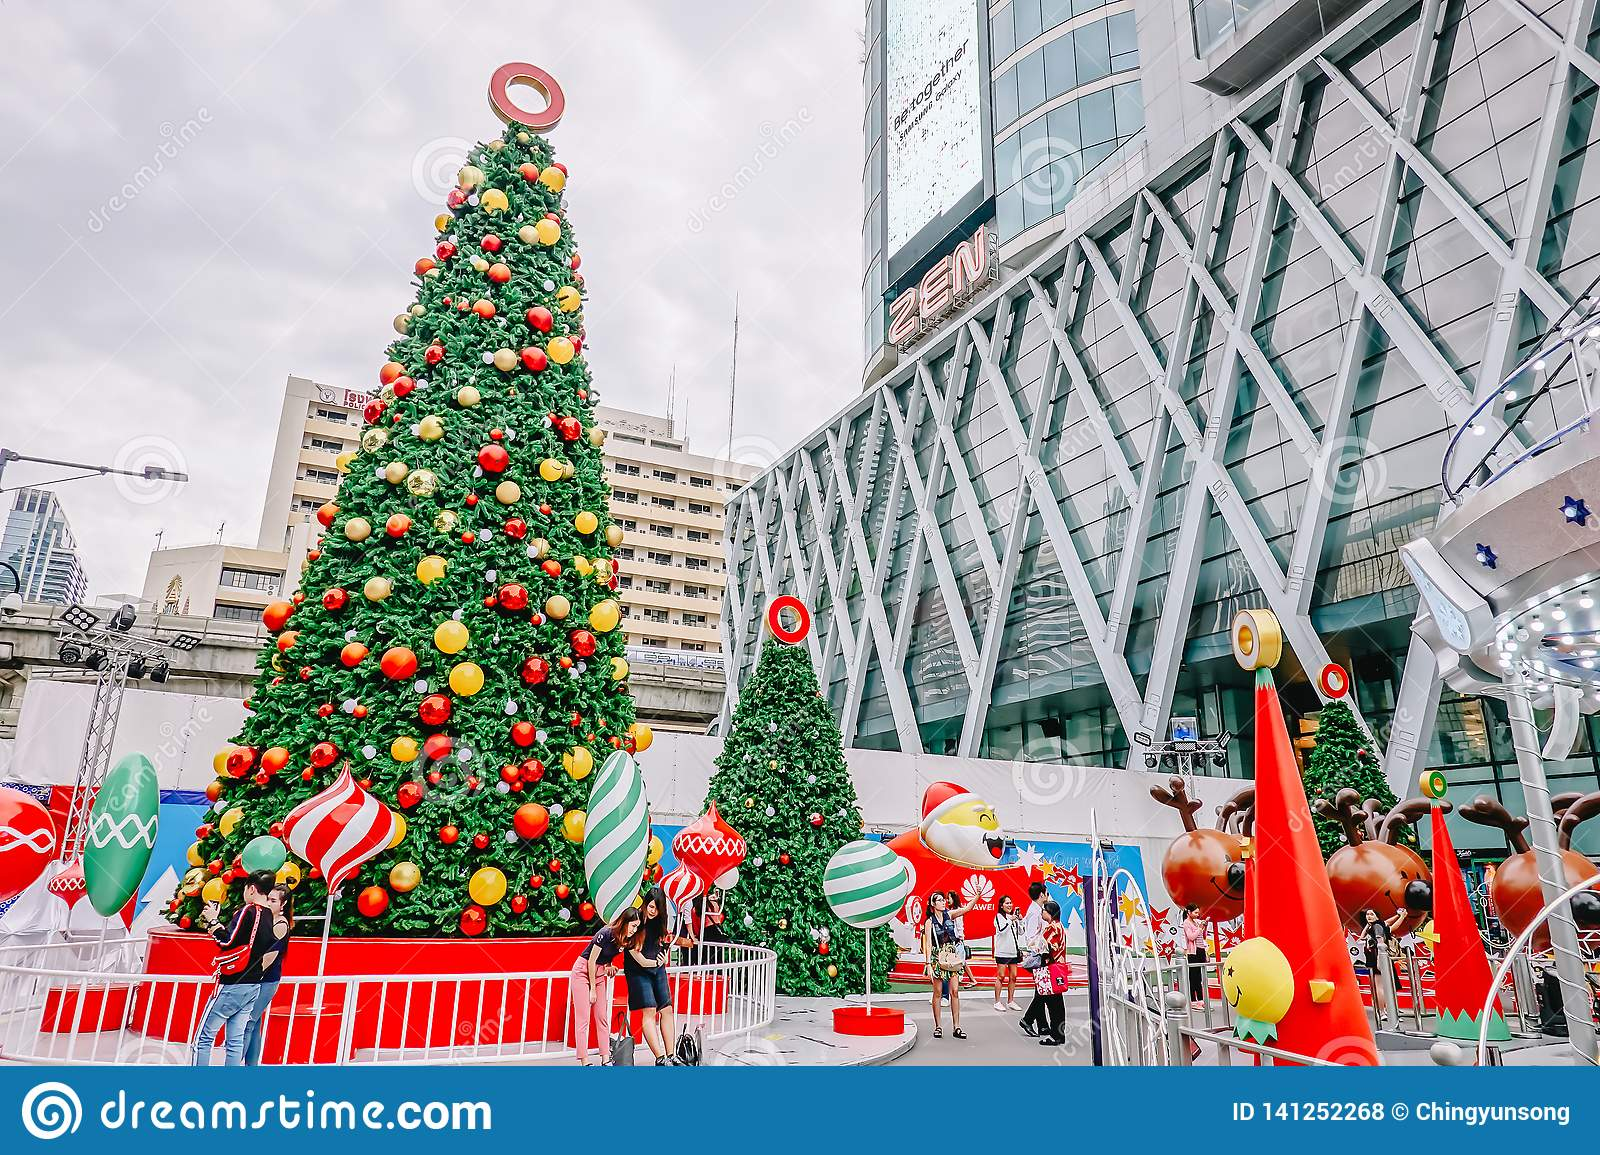 Welcome To Christmas.Centralworld Shopping Mall Welcome To Christmas And Happy